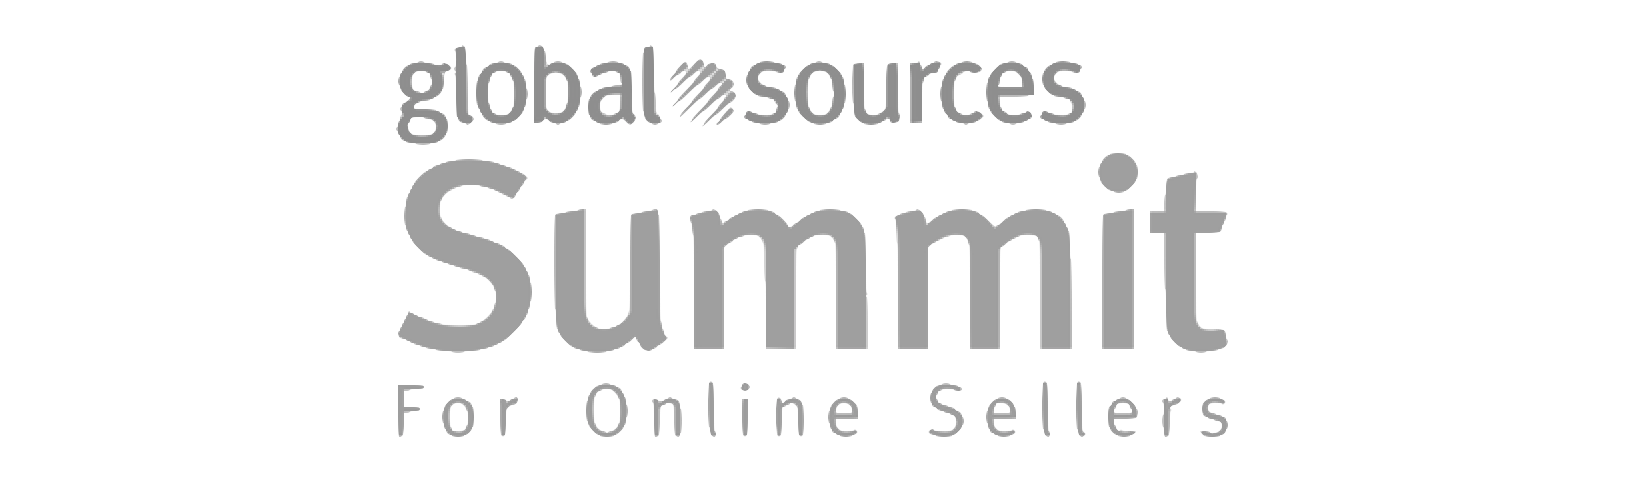 Global sources summit conference amazon sellers 2